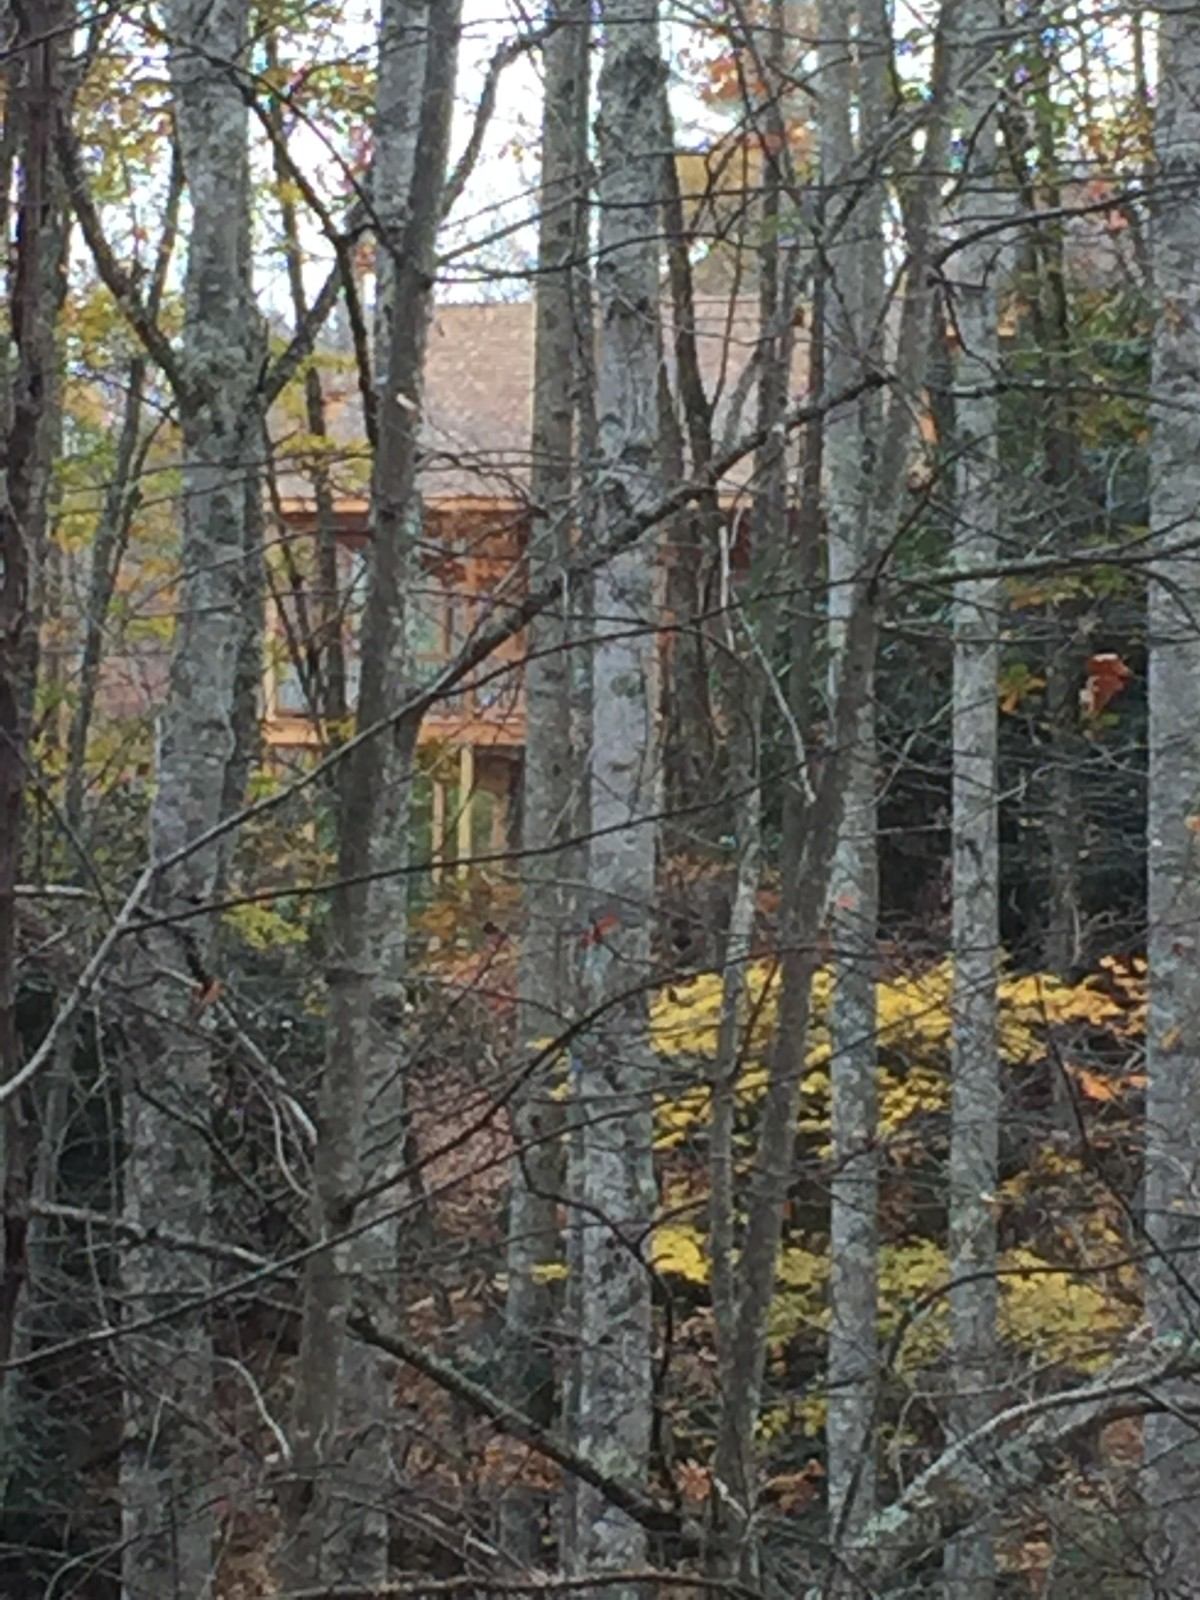 One view of the house from Bear Paw Trail